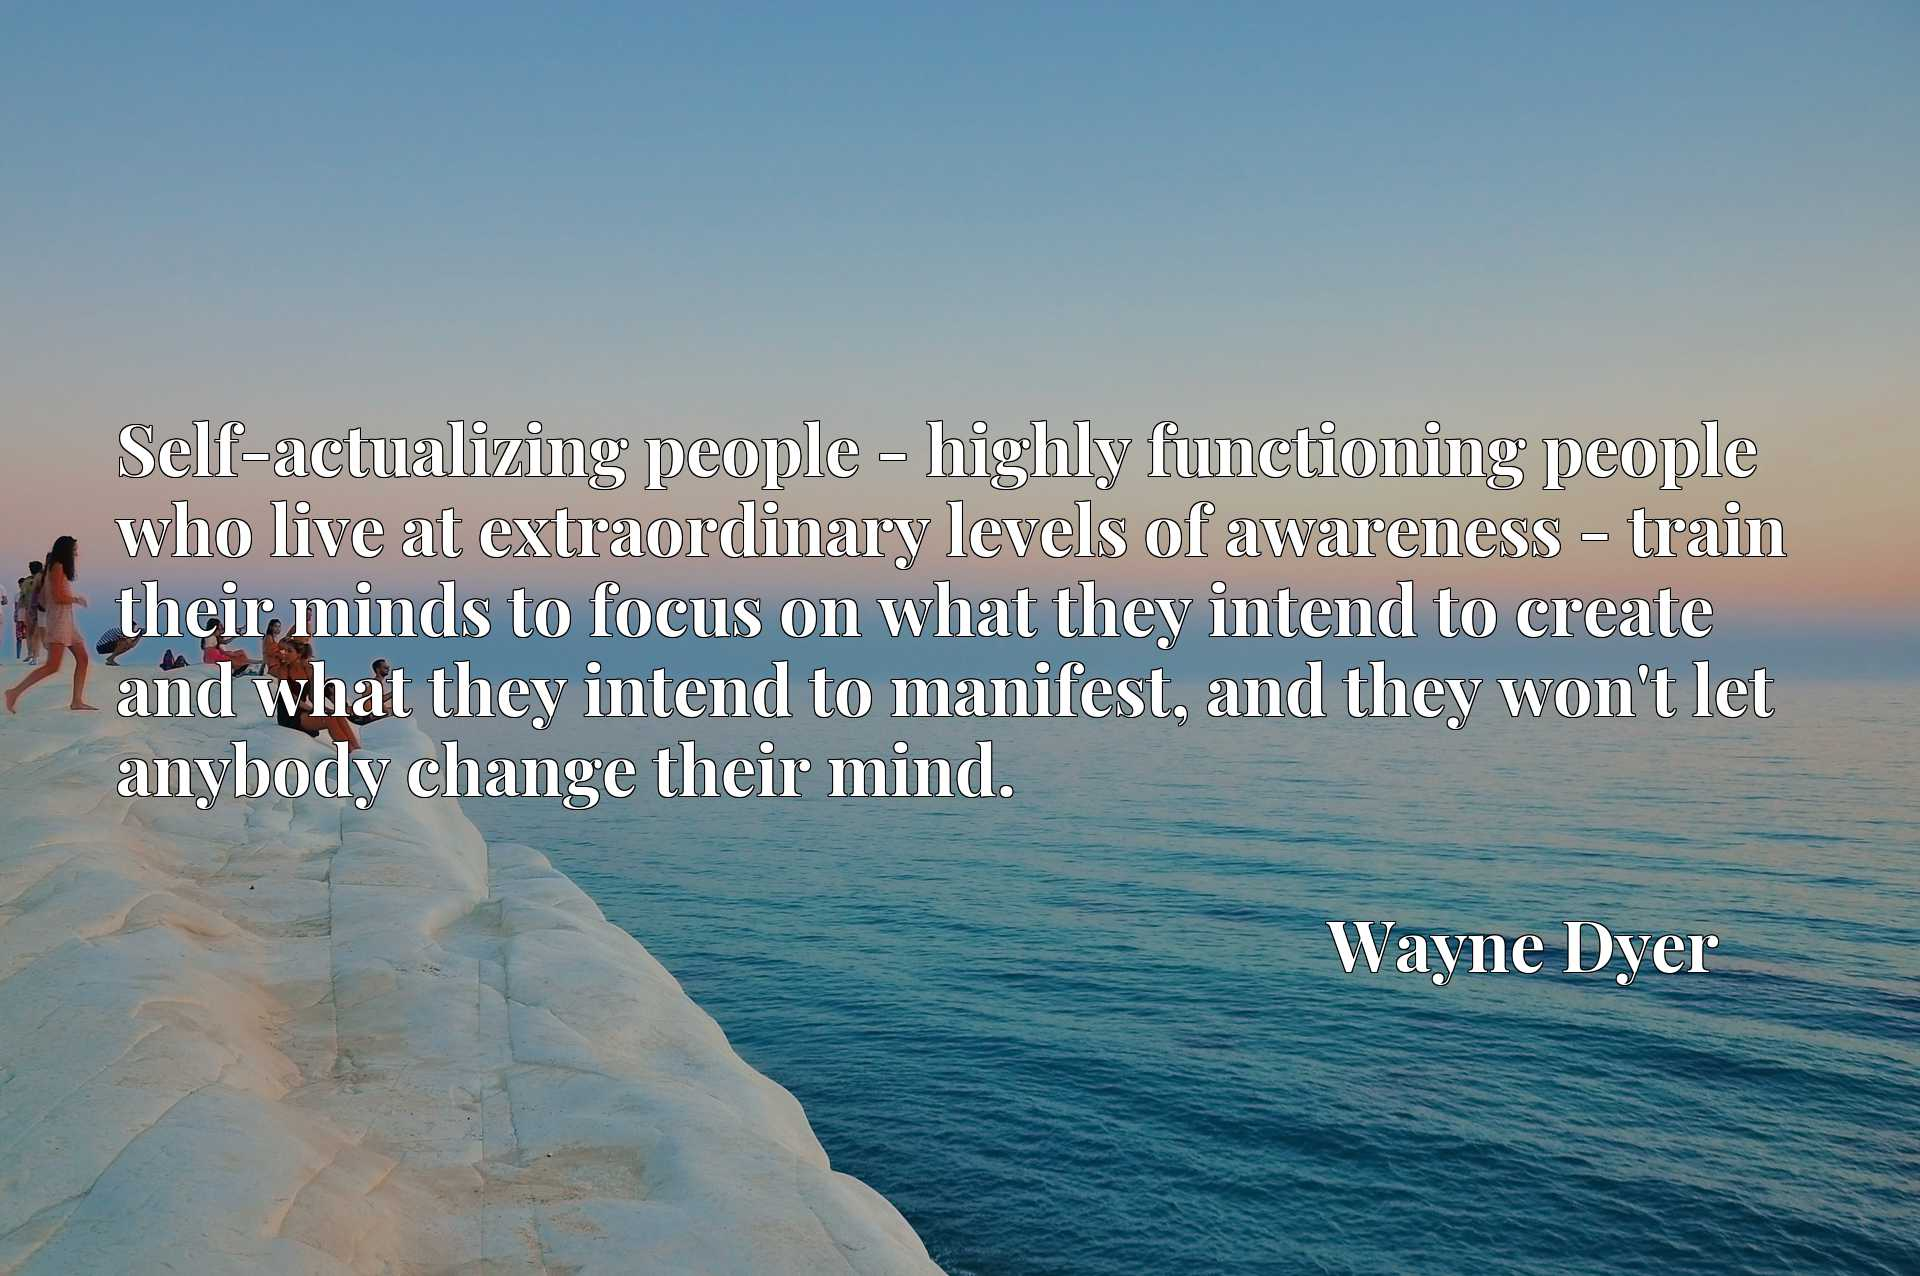 Self-actualizing people - highly functioning people who live at extraordinary levels of awareness - train their minds to focus on what they intend to create and what they intend to manifest, and they won't let anybody change their mind.